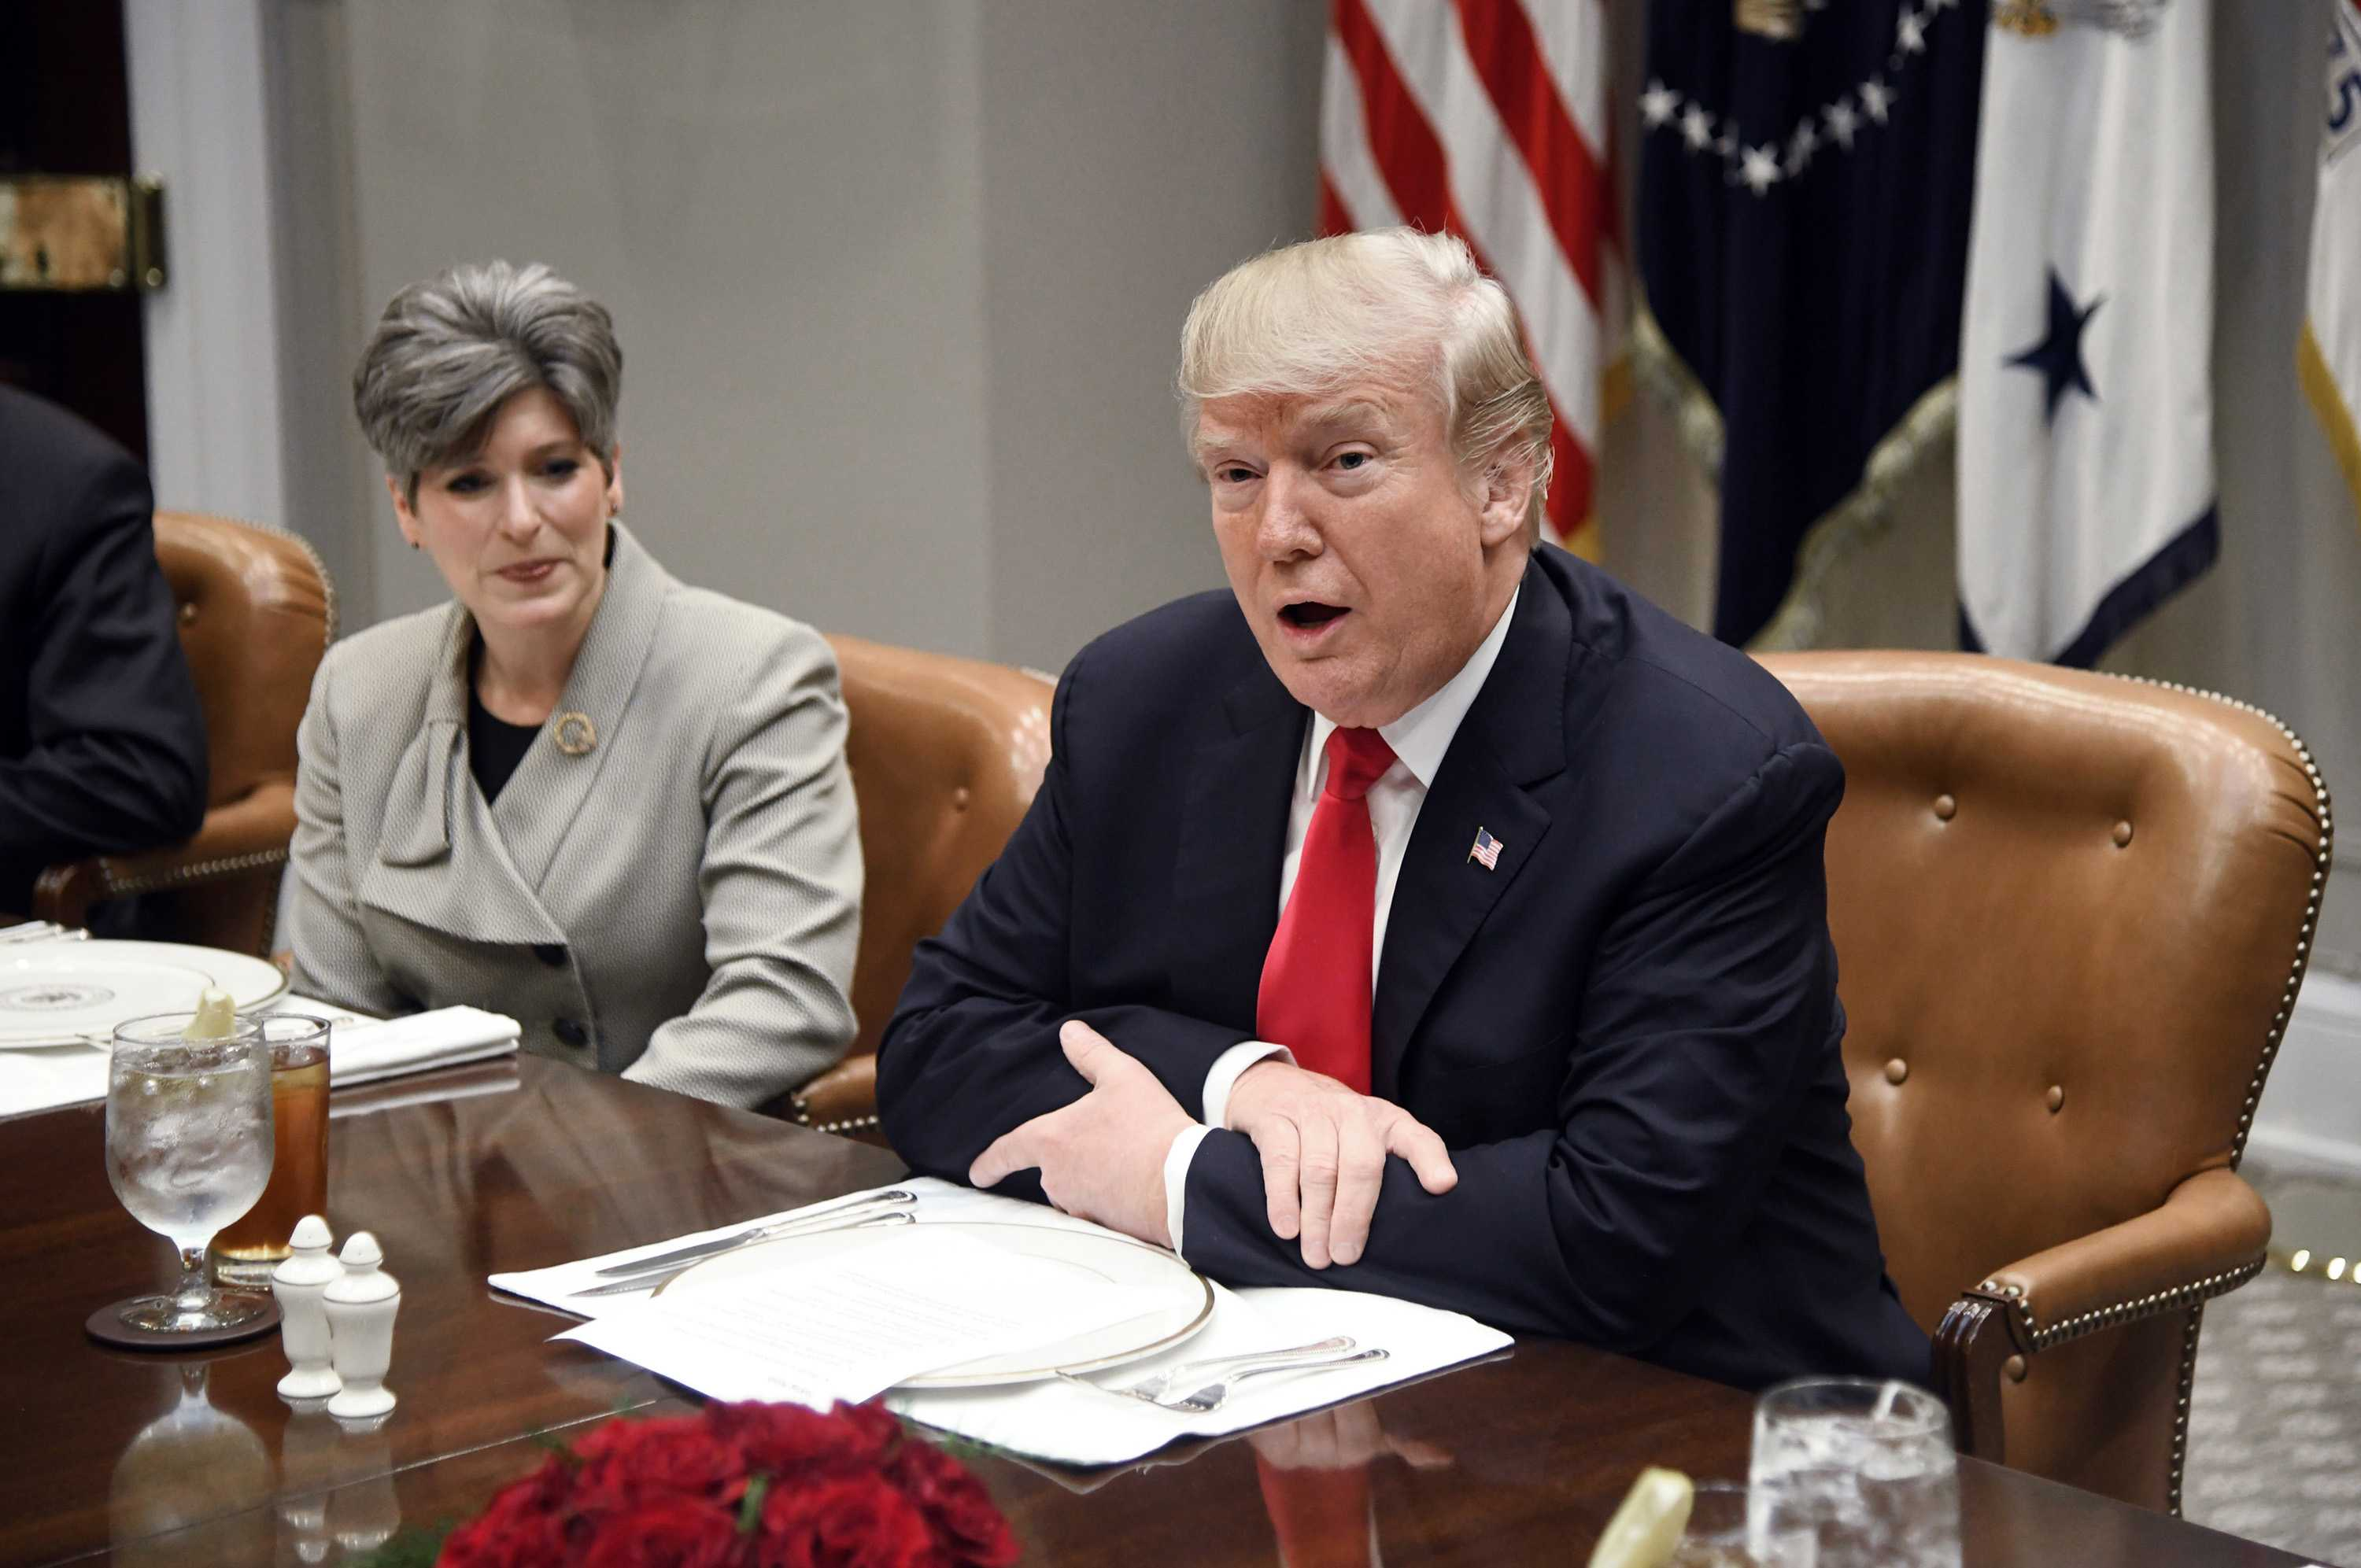 Joni Ernst praises trade agreements ahead of U.S. Senate vote on USMCA